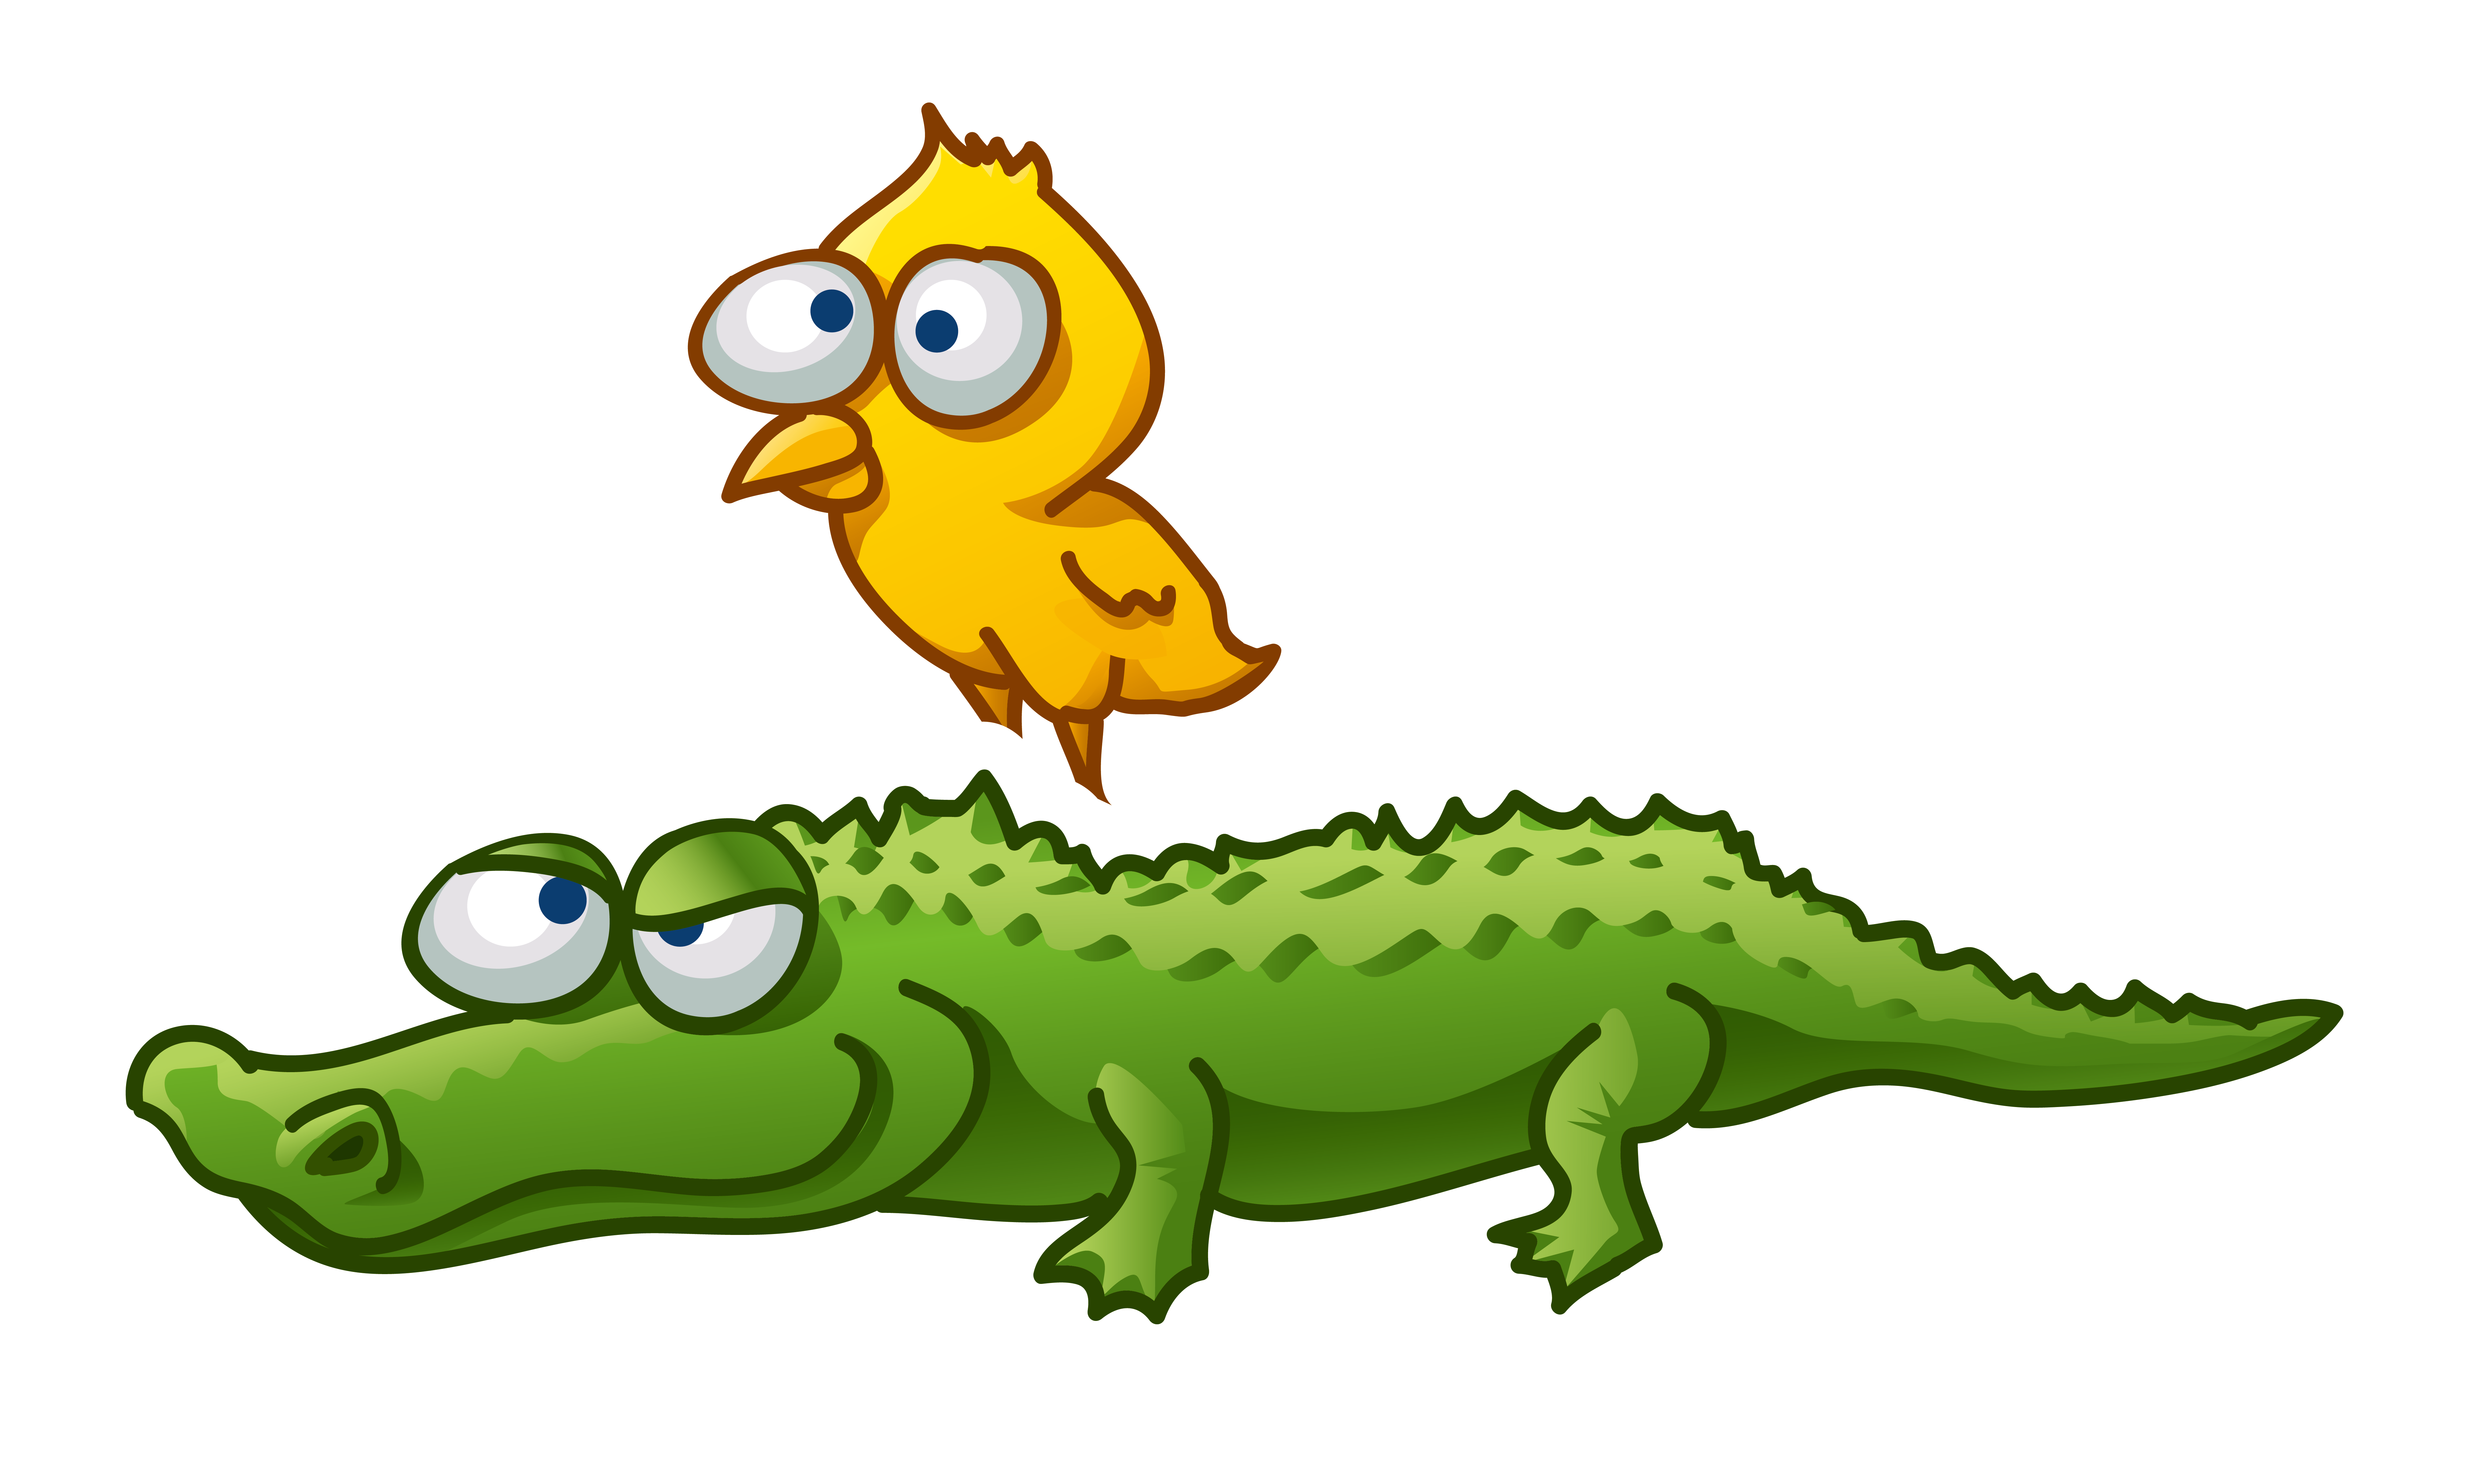 Clipart crocodile with a basketball in its mouth clipart library library Nile Crocodile Clipart at GetDrawings.com | Free for personal use ... clipart library library